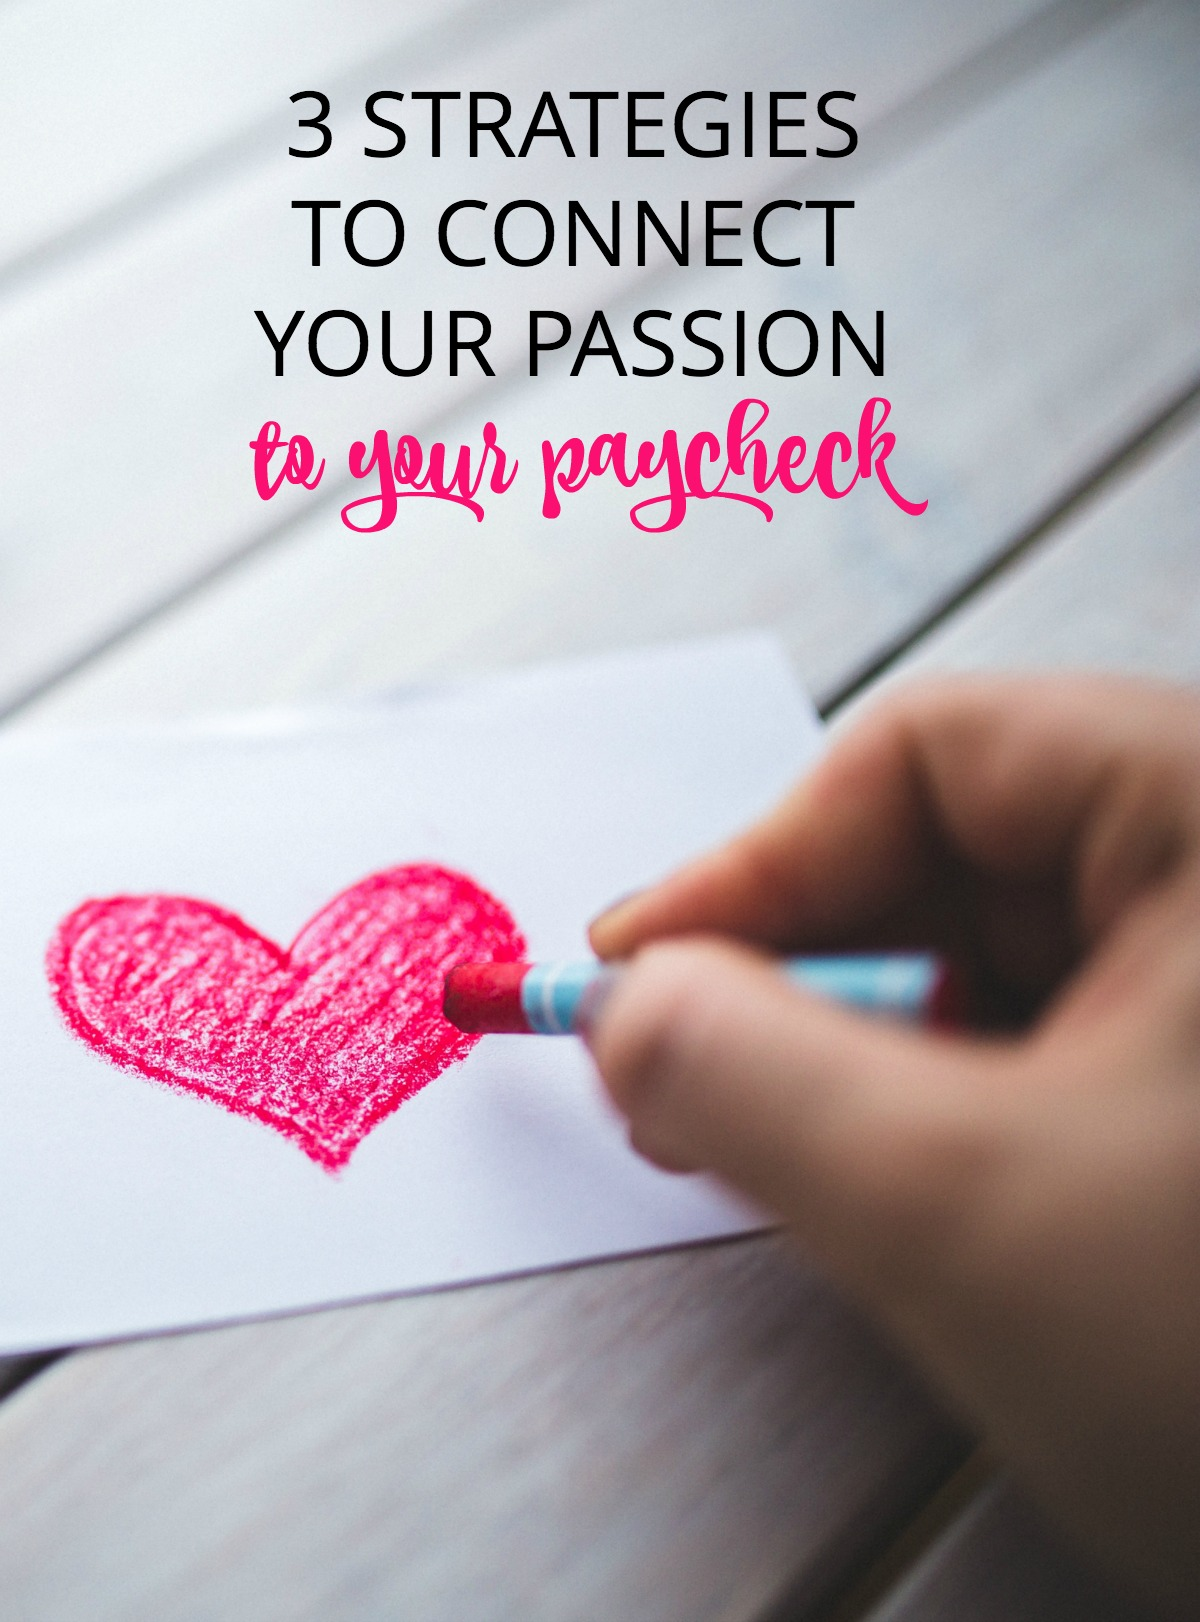 These three strategies helped one working mom make the choice to stop trading her passion for a paycheck. If you're struggling with this issue, they may also work for you in finding a job you love.